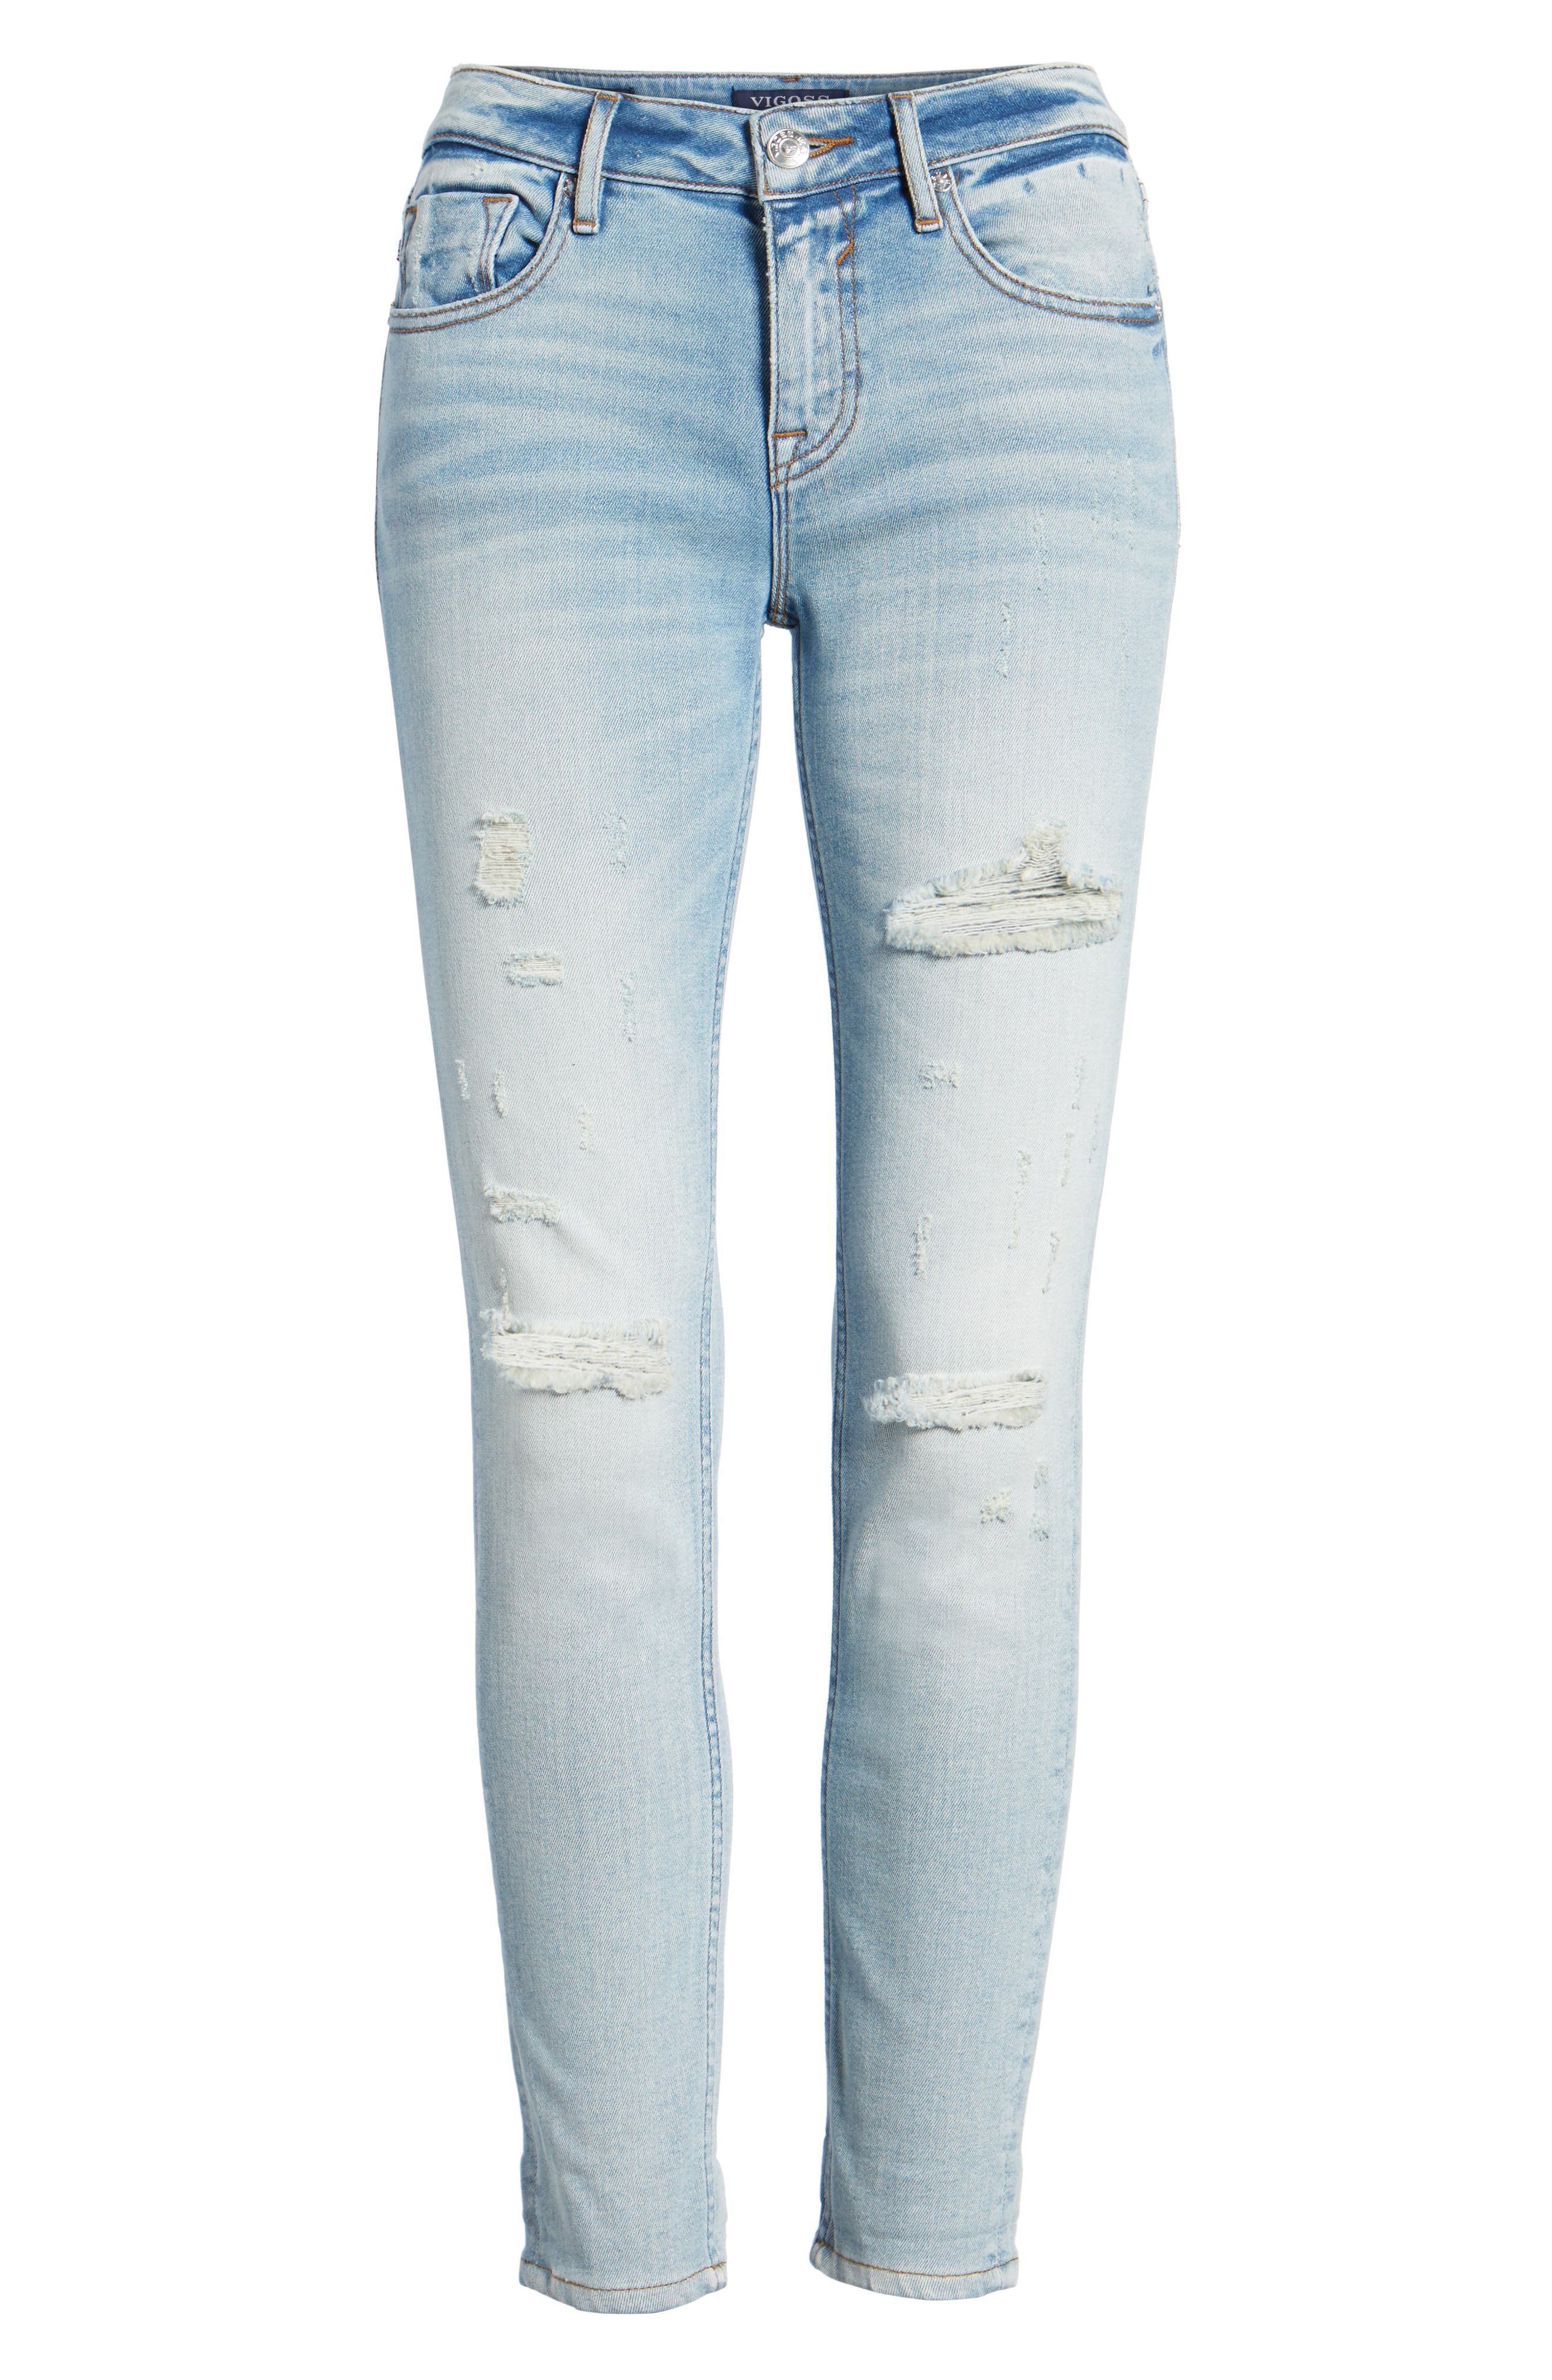 Thompson Tomboy Distressed Skinny Jeans,                             Alternate thumbnail 6, color,                             Light Wash